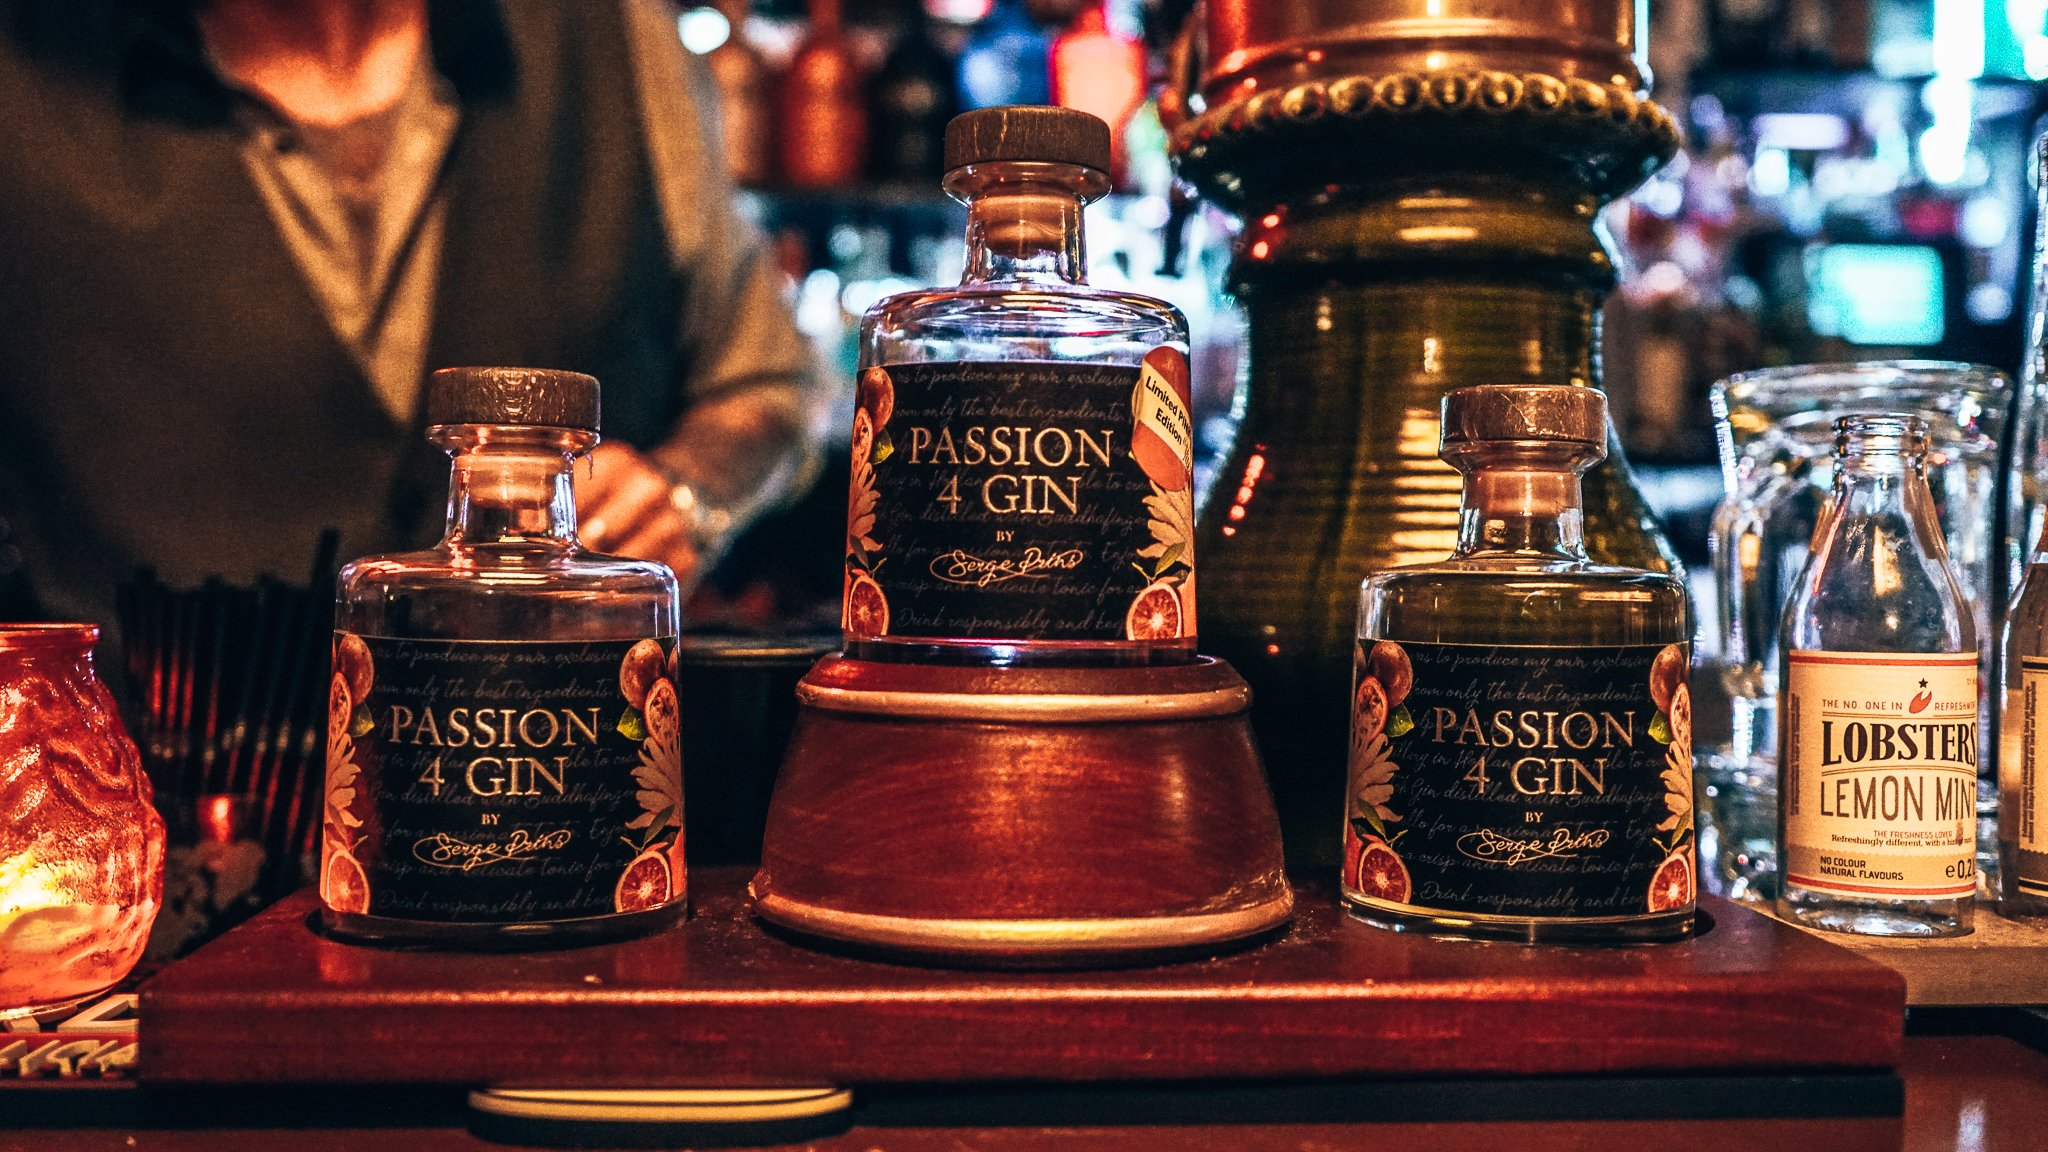 PASSION4GIN, Eetcafe De Kleine Prins, Alles over gin.